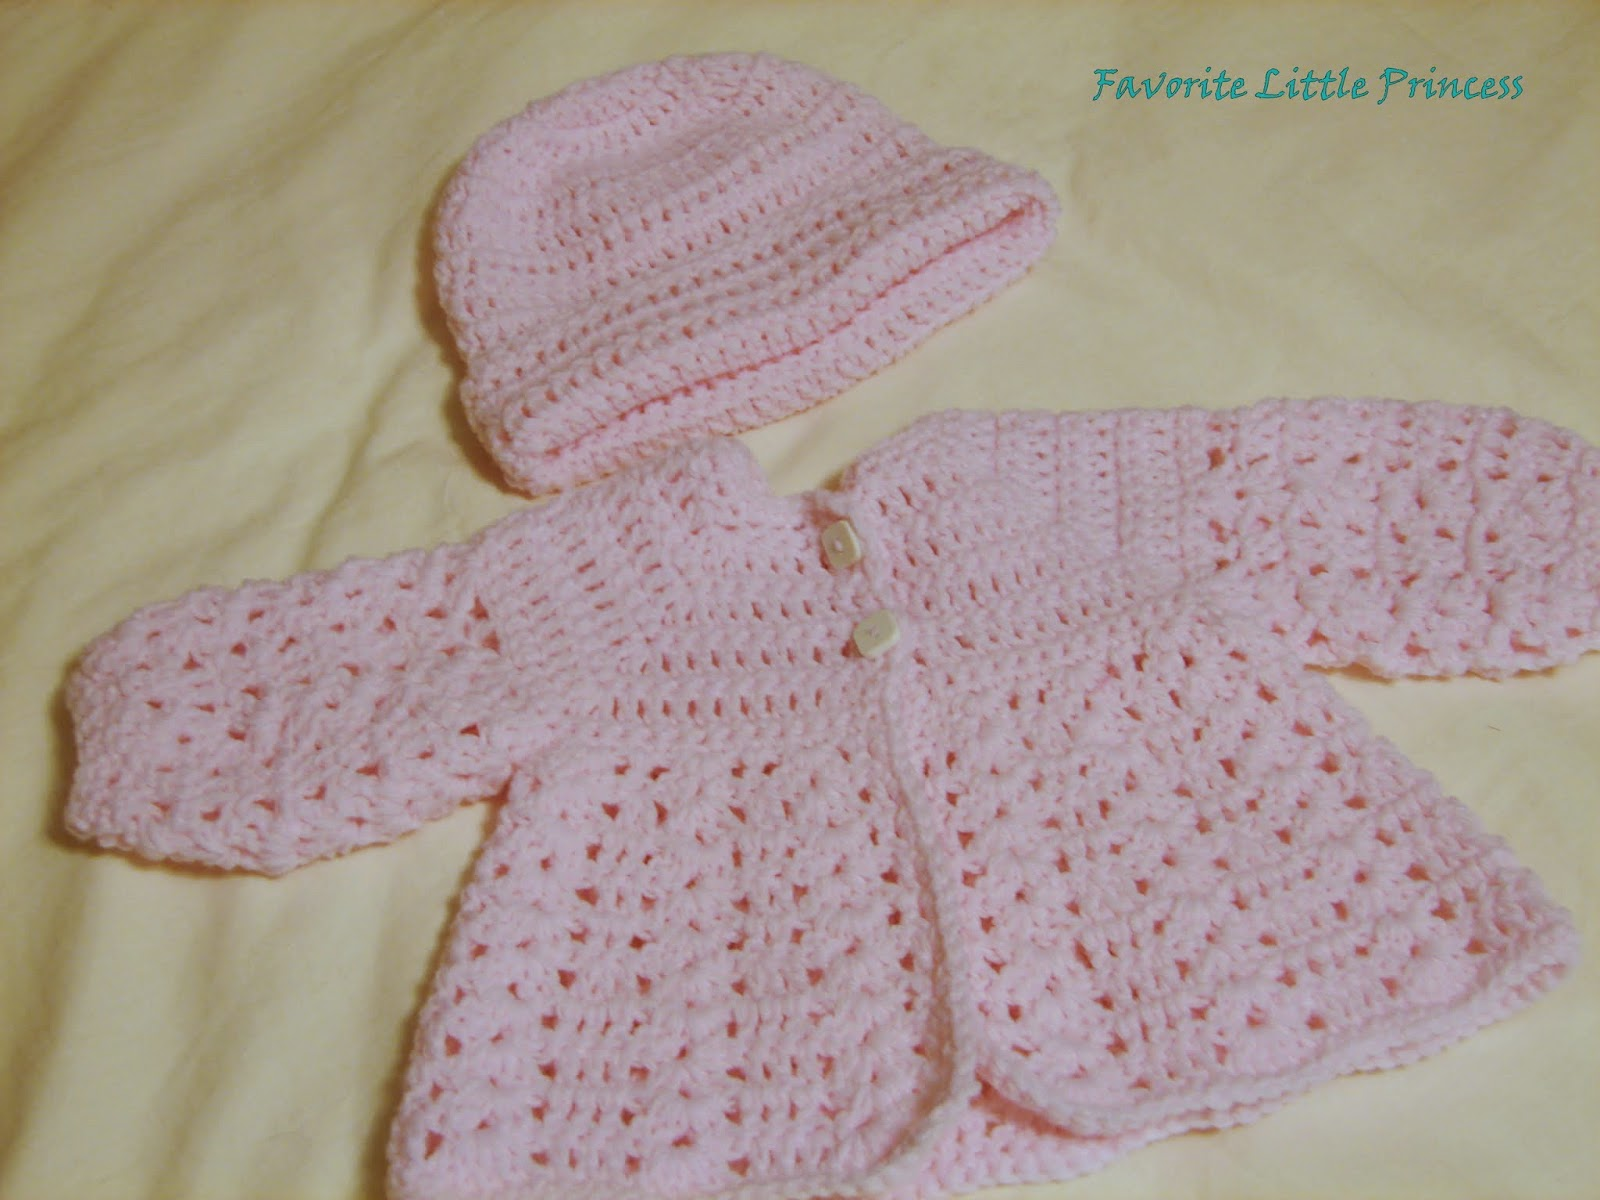 Crochet Baby Hat And Sweater Pattern : Favorite Little Princess: Easy Baby Sweater and Hat